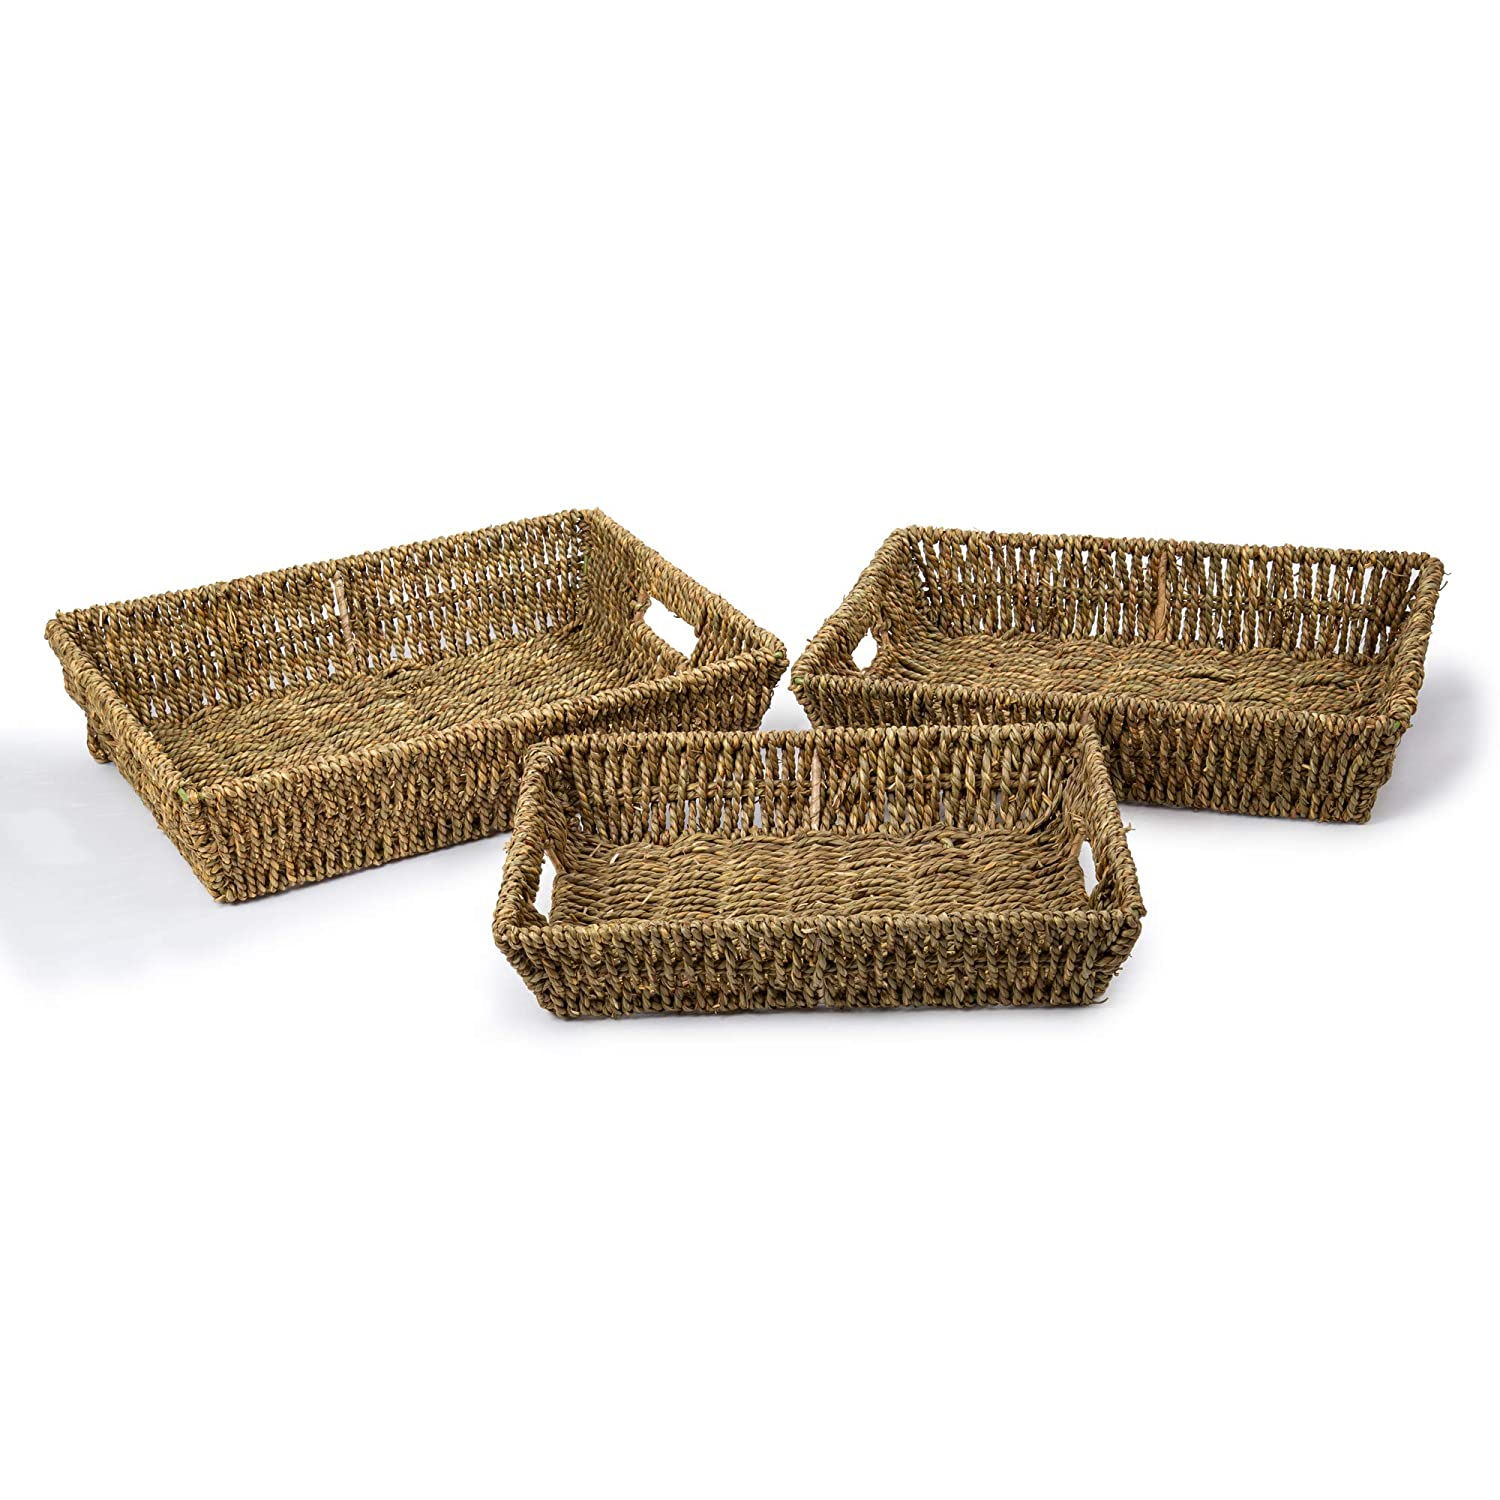 Truu Design Beige Seagrass Tray Set 15.25 x 11.75 x 3.5 inches